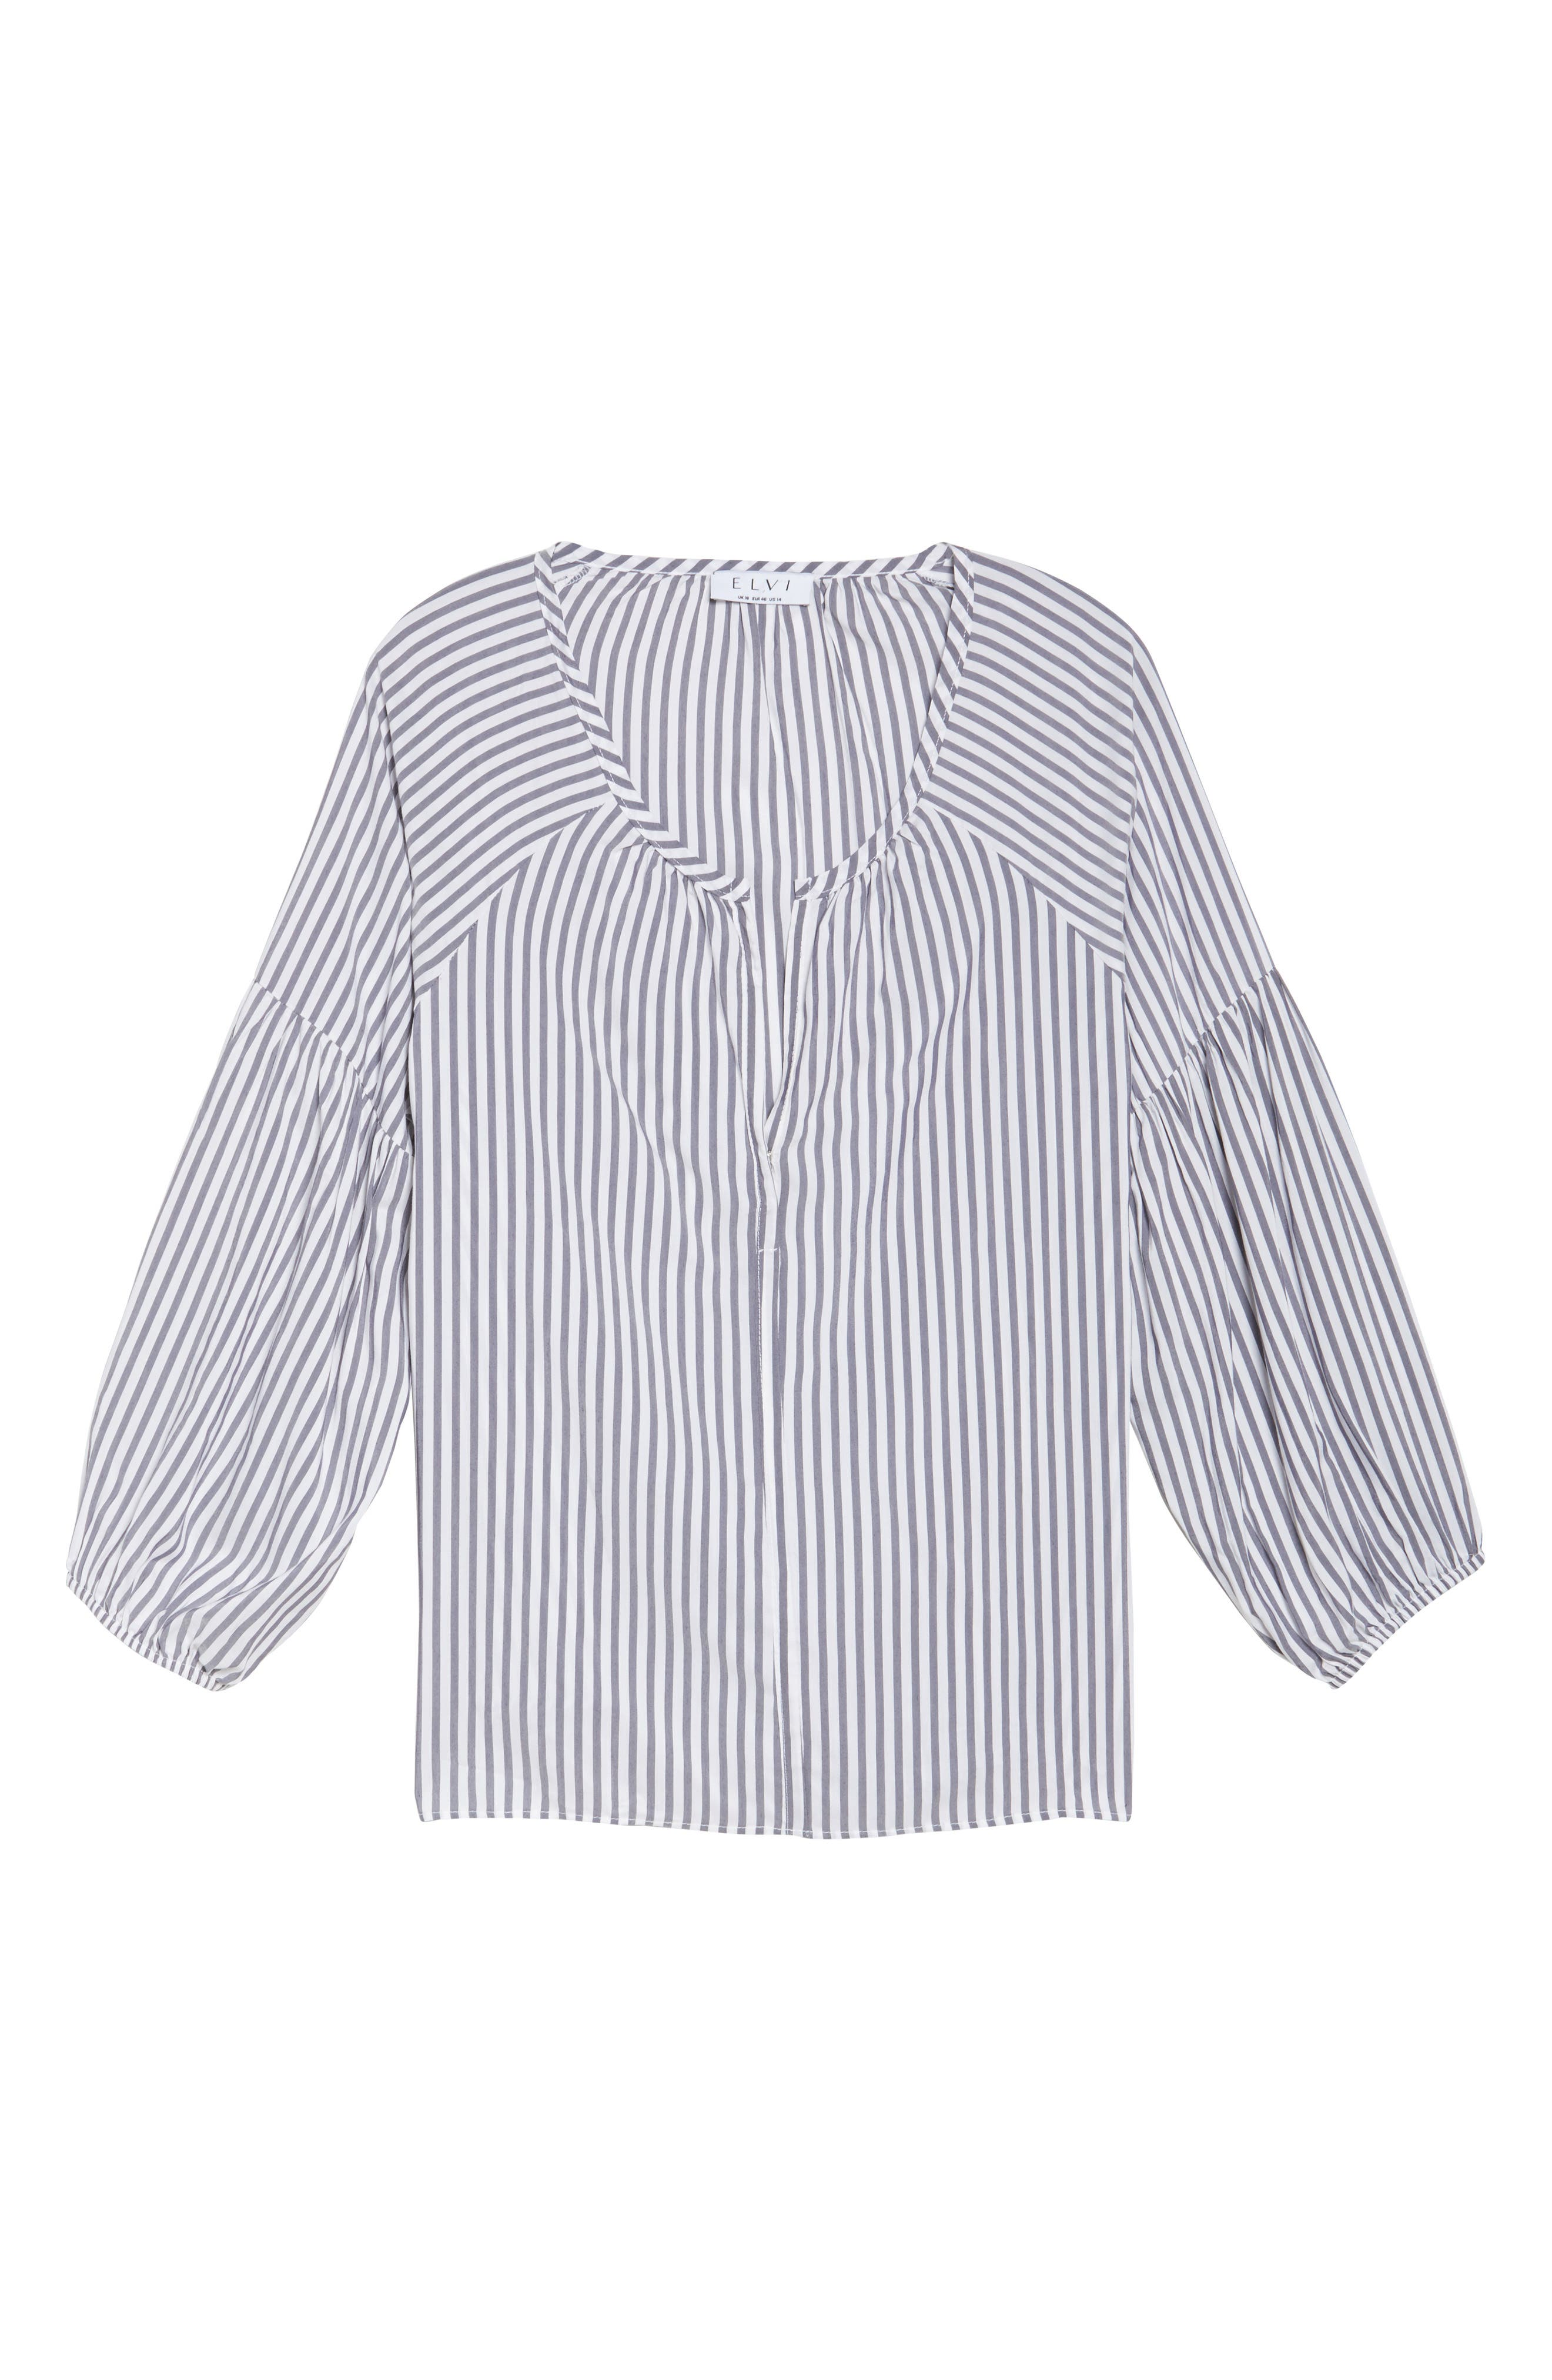 Gathered Sleeve Stripe Blouse,                             Alternate thumbnail 6, color,                             White